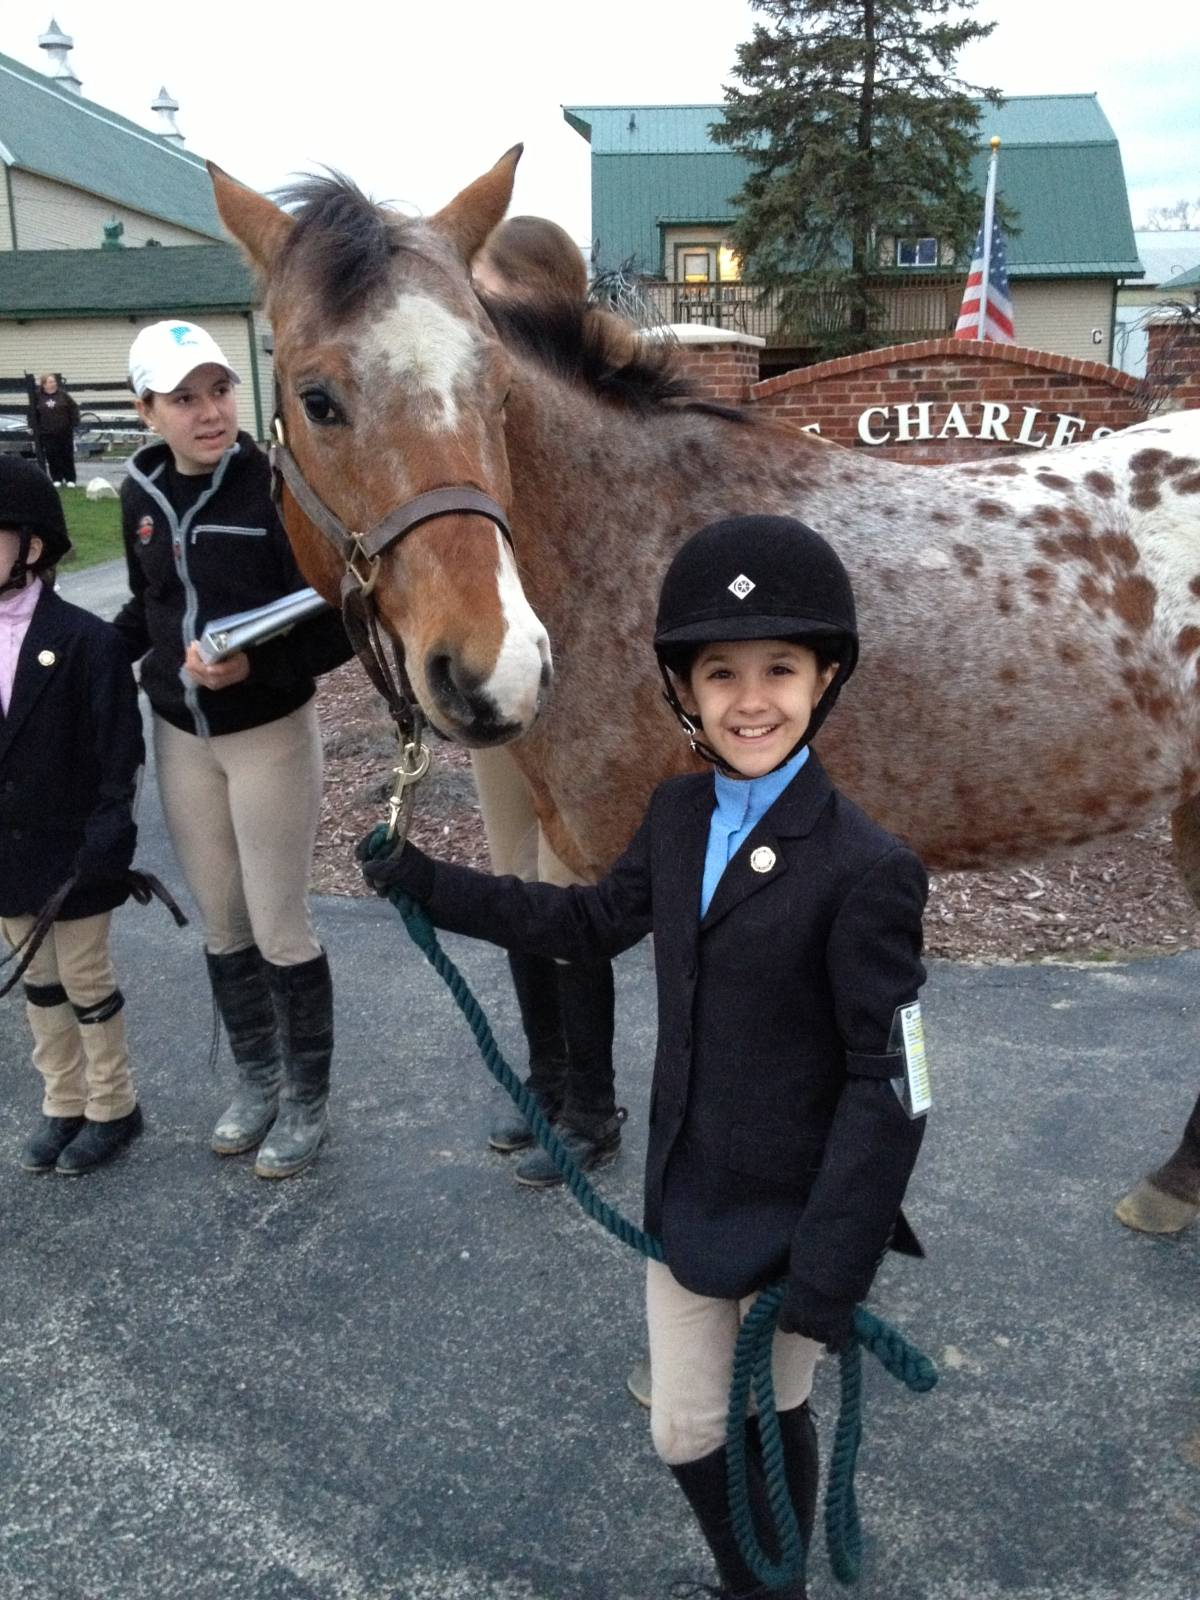 Grace Kucienski and Ziggy Stardust after earning their D-1 Certification for the United States Pony Clubs, Inc.